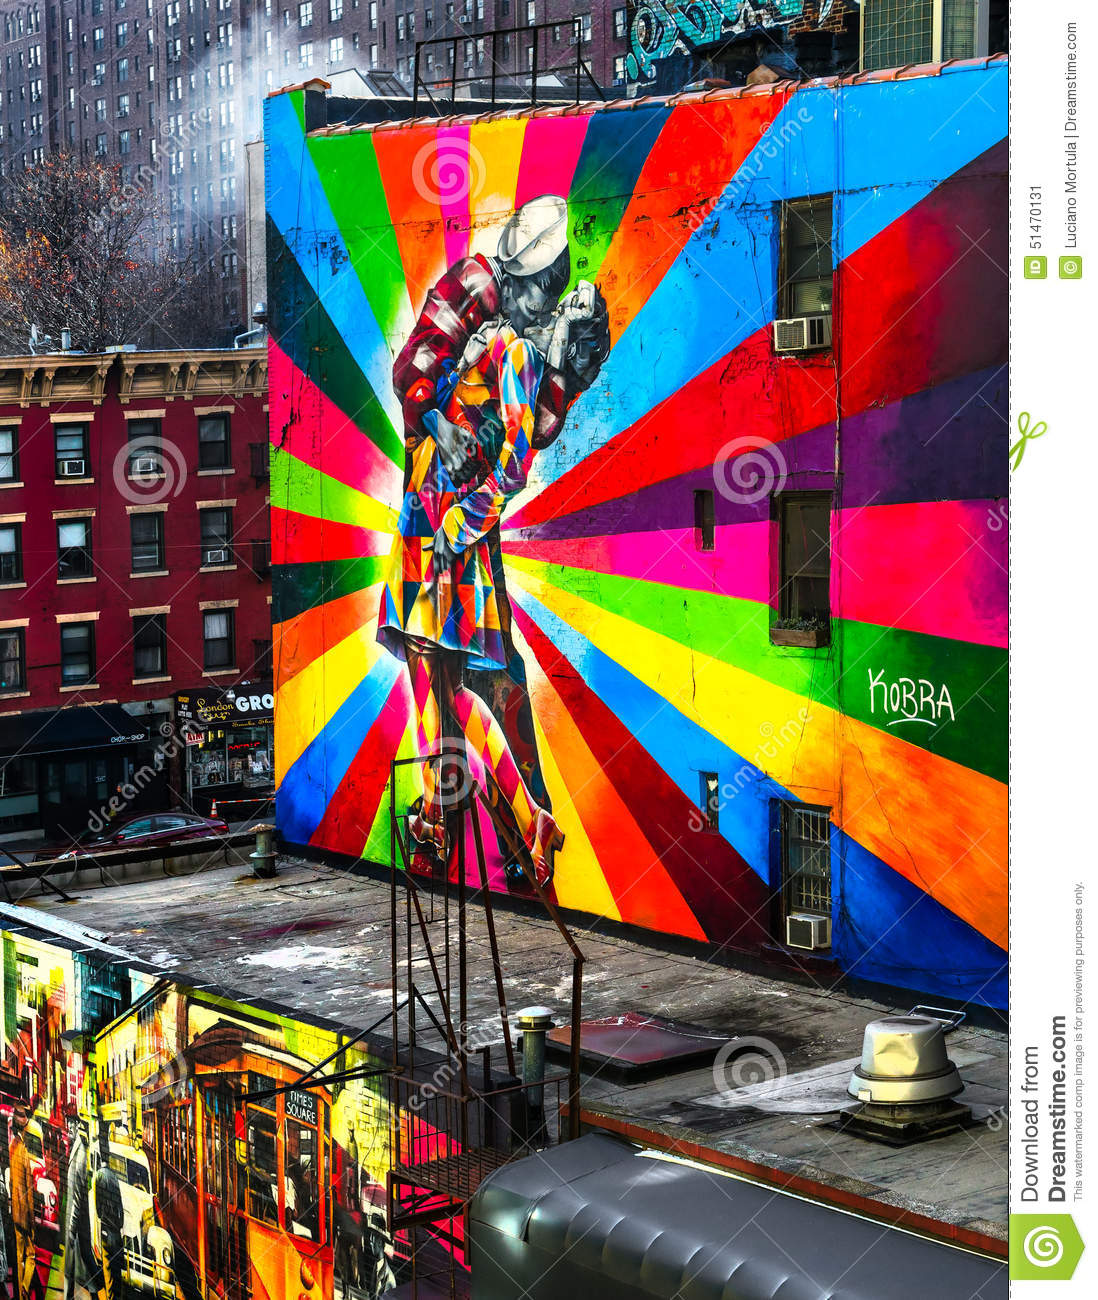 Une peinture murale new york etats unis photo ditorial for Decoration murale geante new york